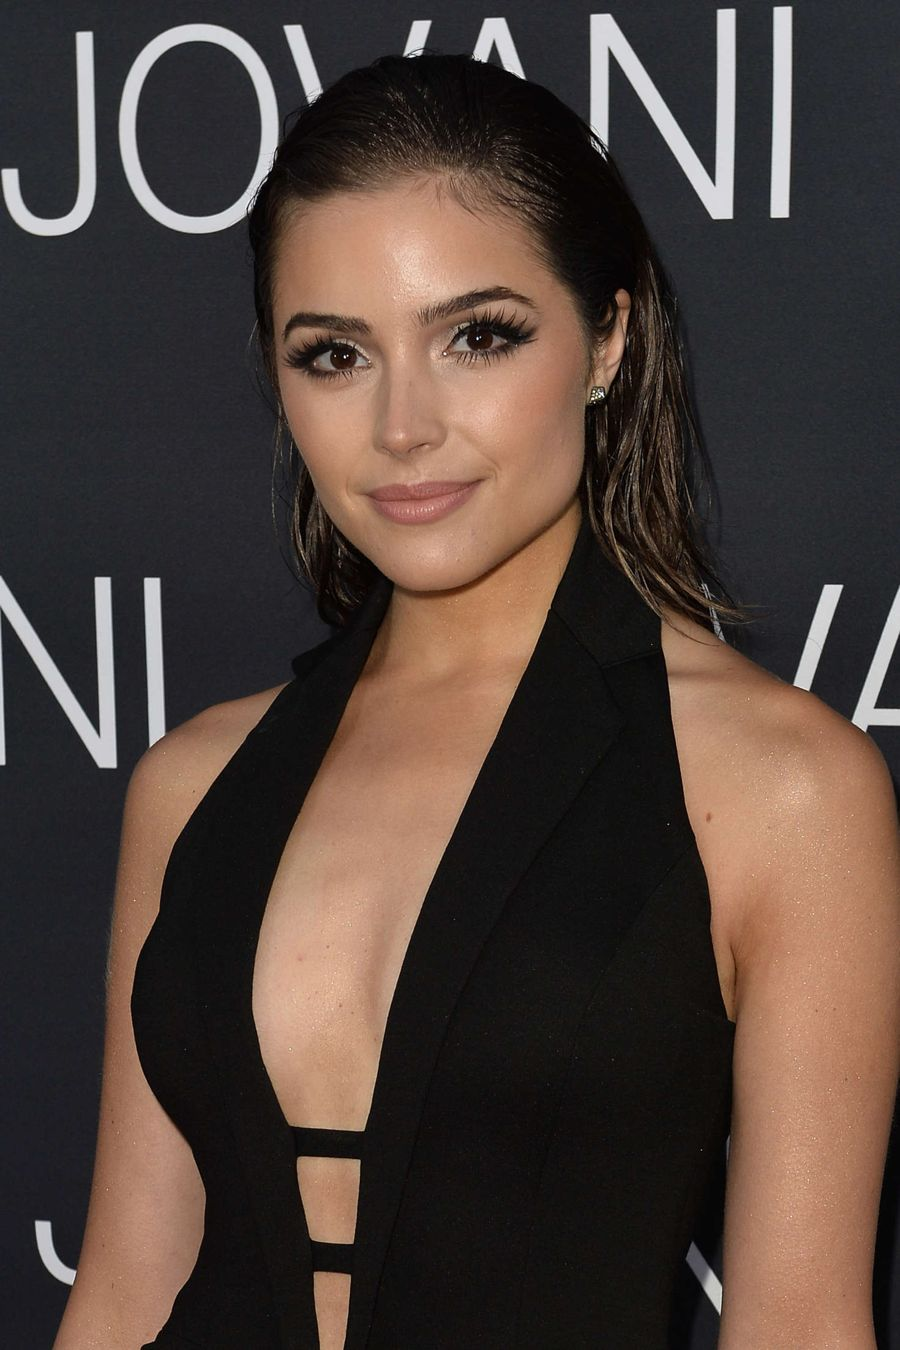 Olivia Culpo - Jovani Los Angeles Store Opening Celebration